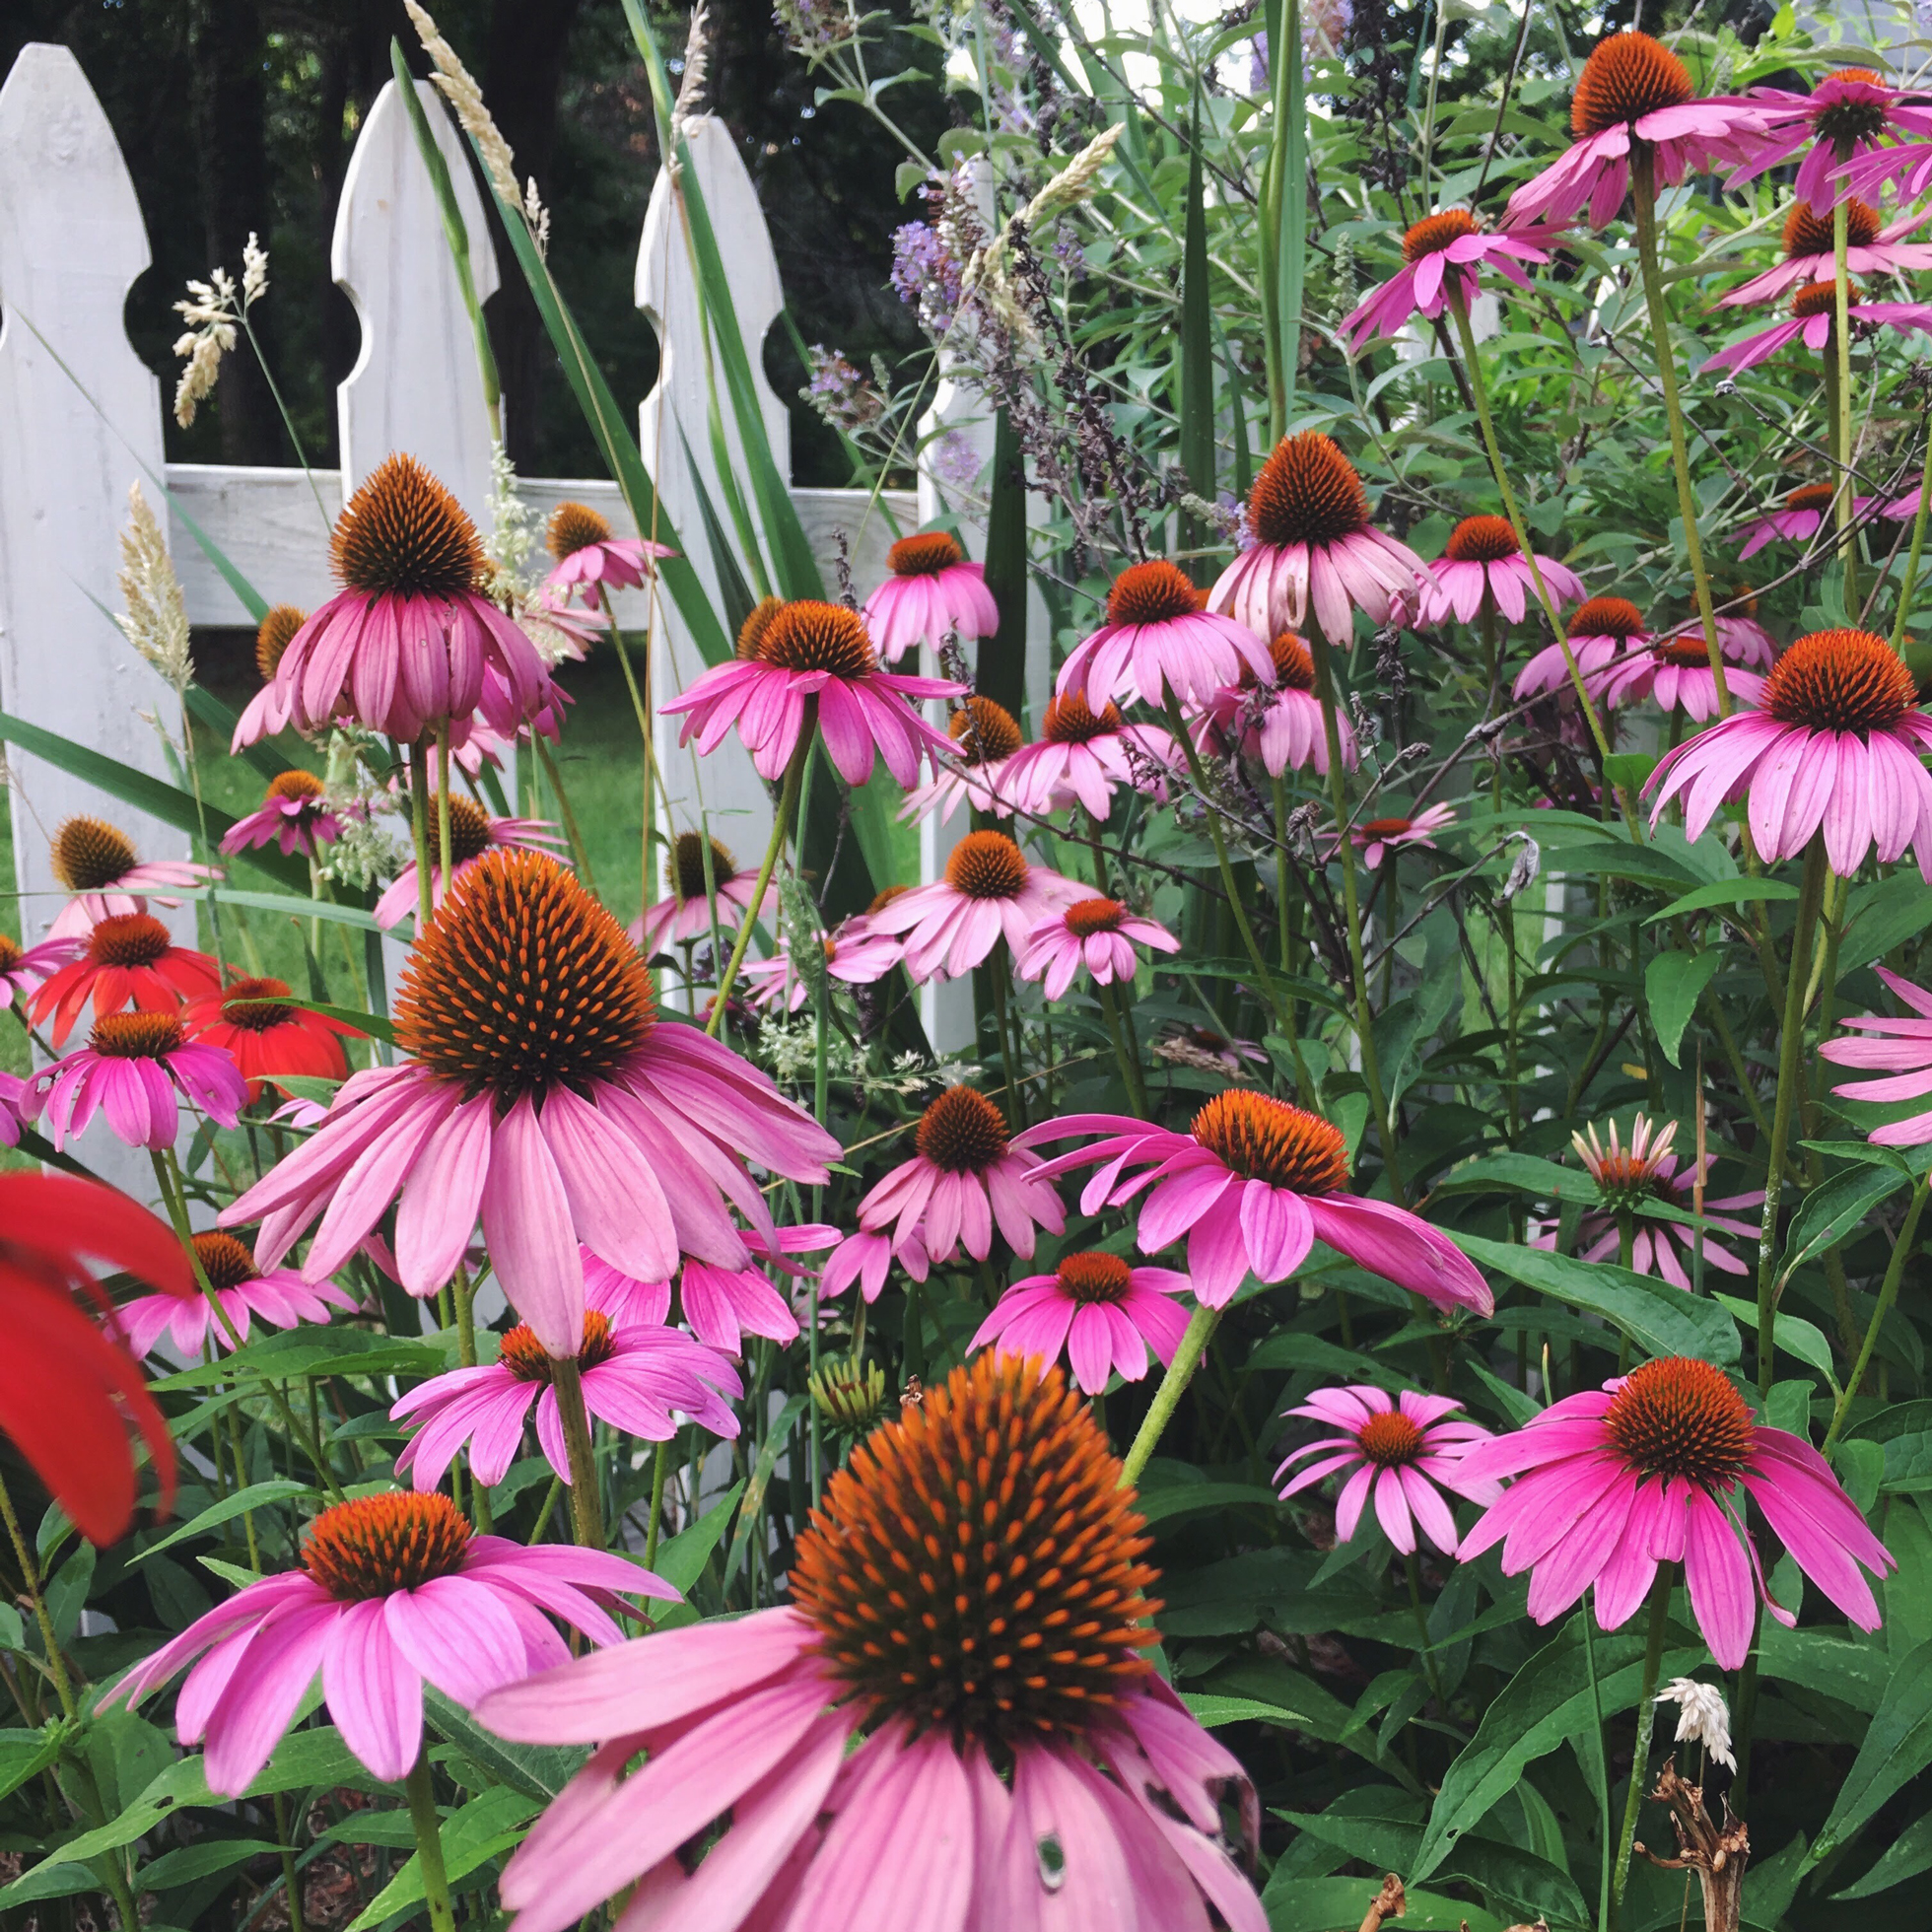 Pink coneflowers in front of a white picket fence